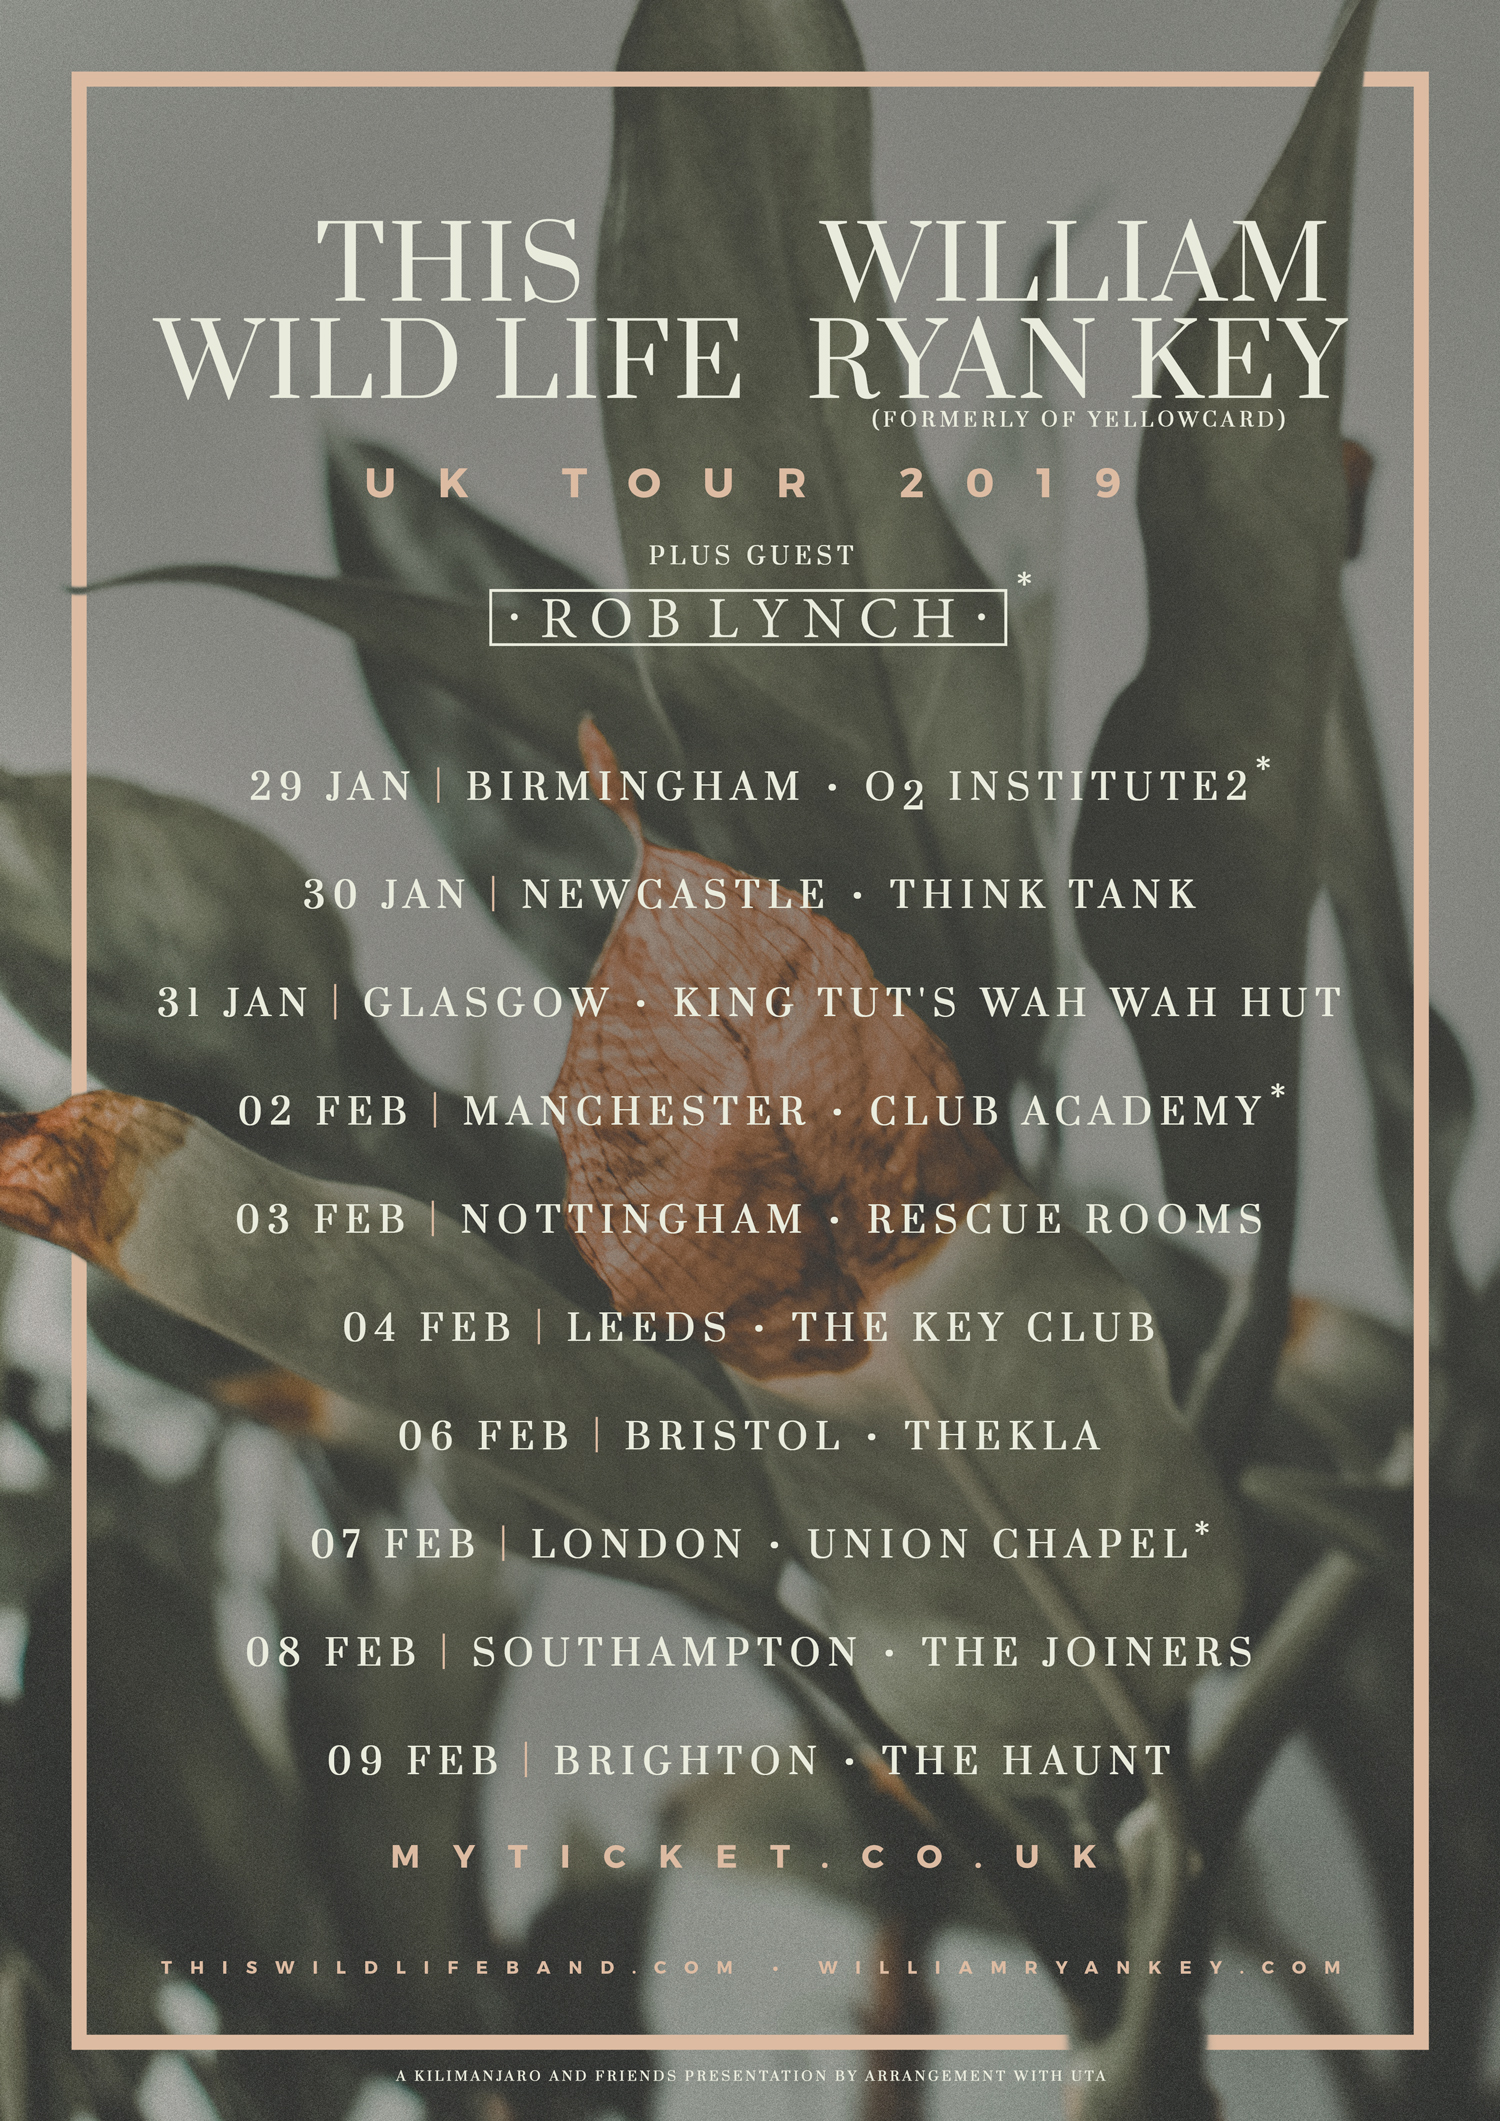 This Wild Life / William Ryan Key